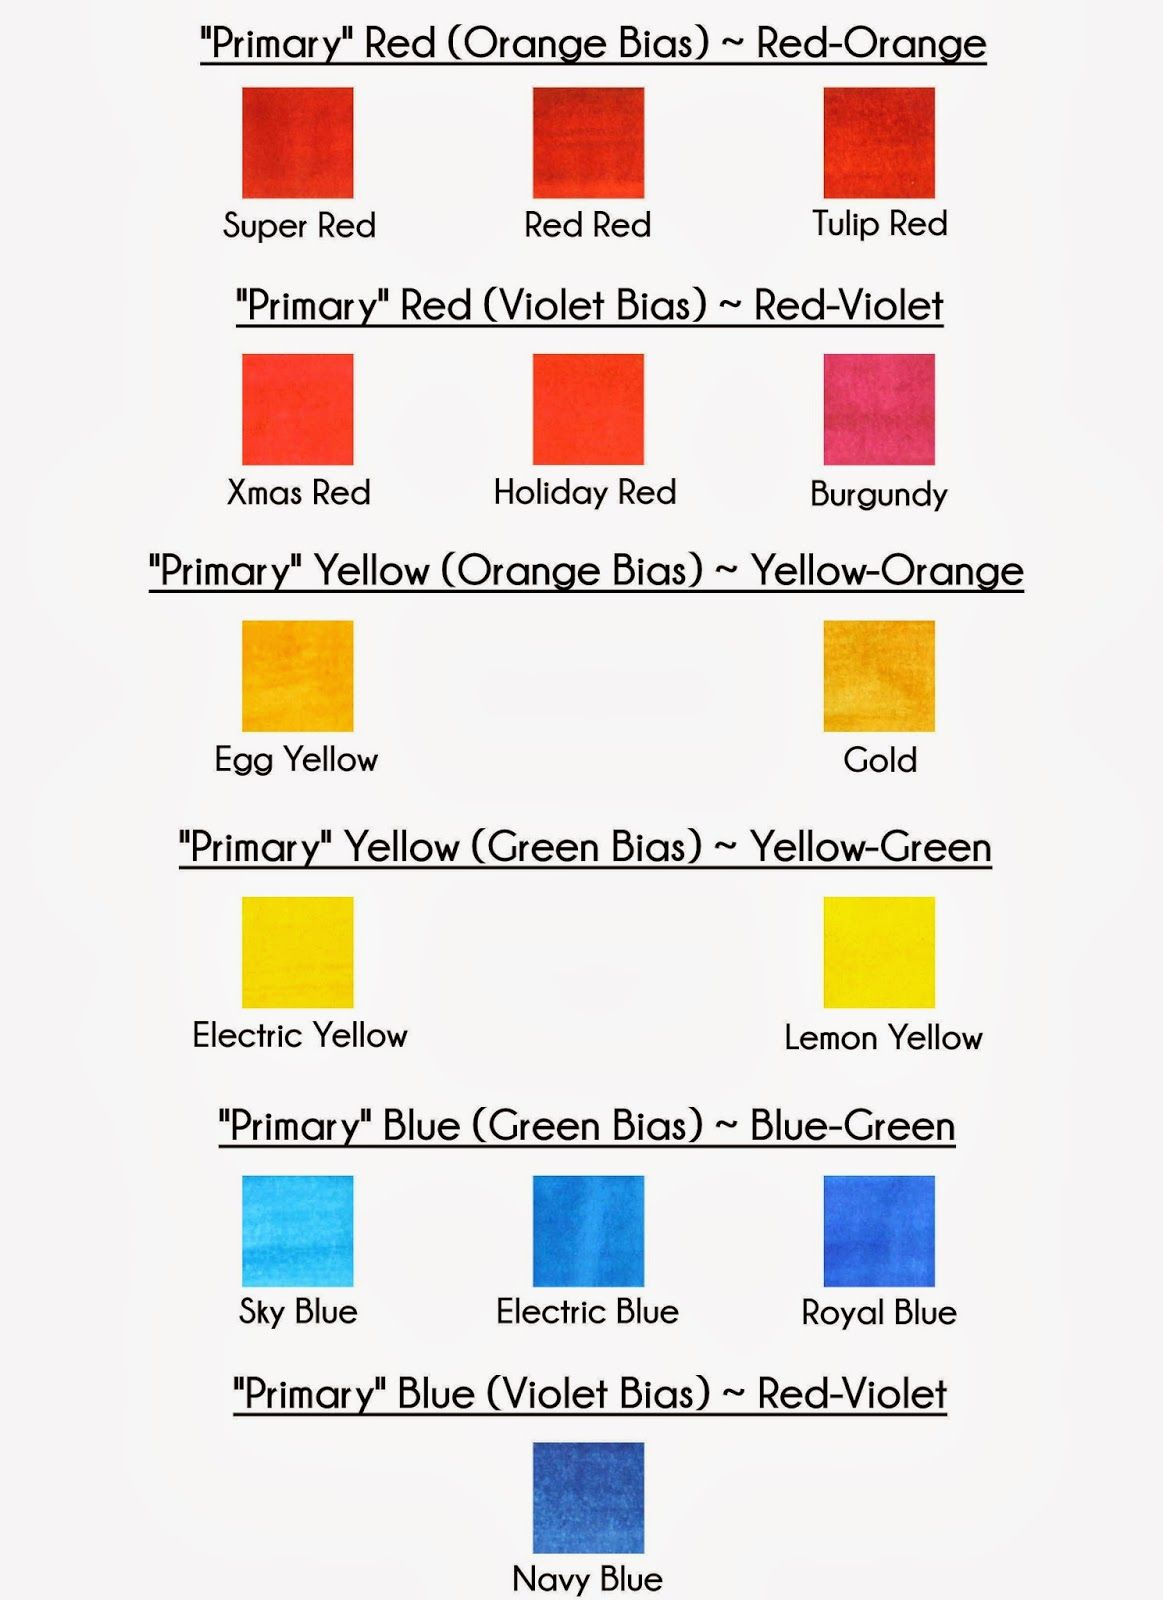 Americolor Primary Color Bias Chart Frostings Fillings